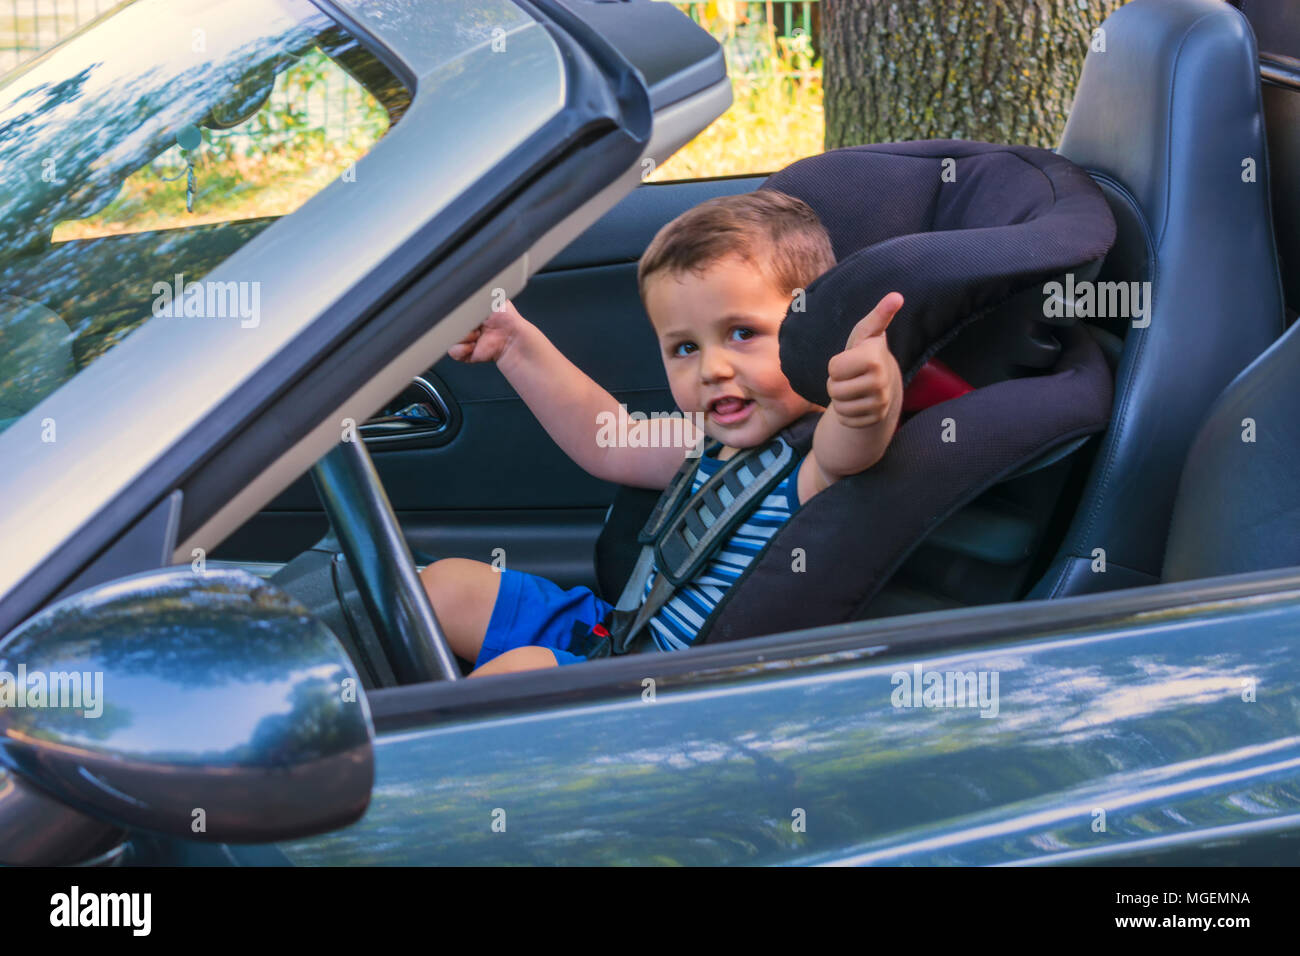 Happy laughing child in a convertible sits in the car child seat and shows the thumbs up. - Stock Image